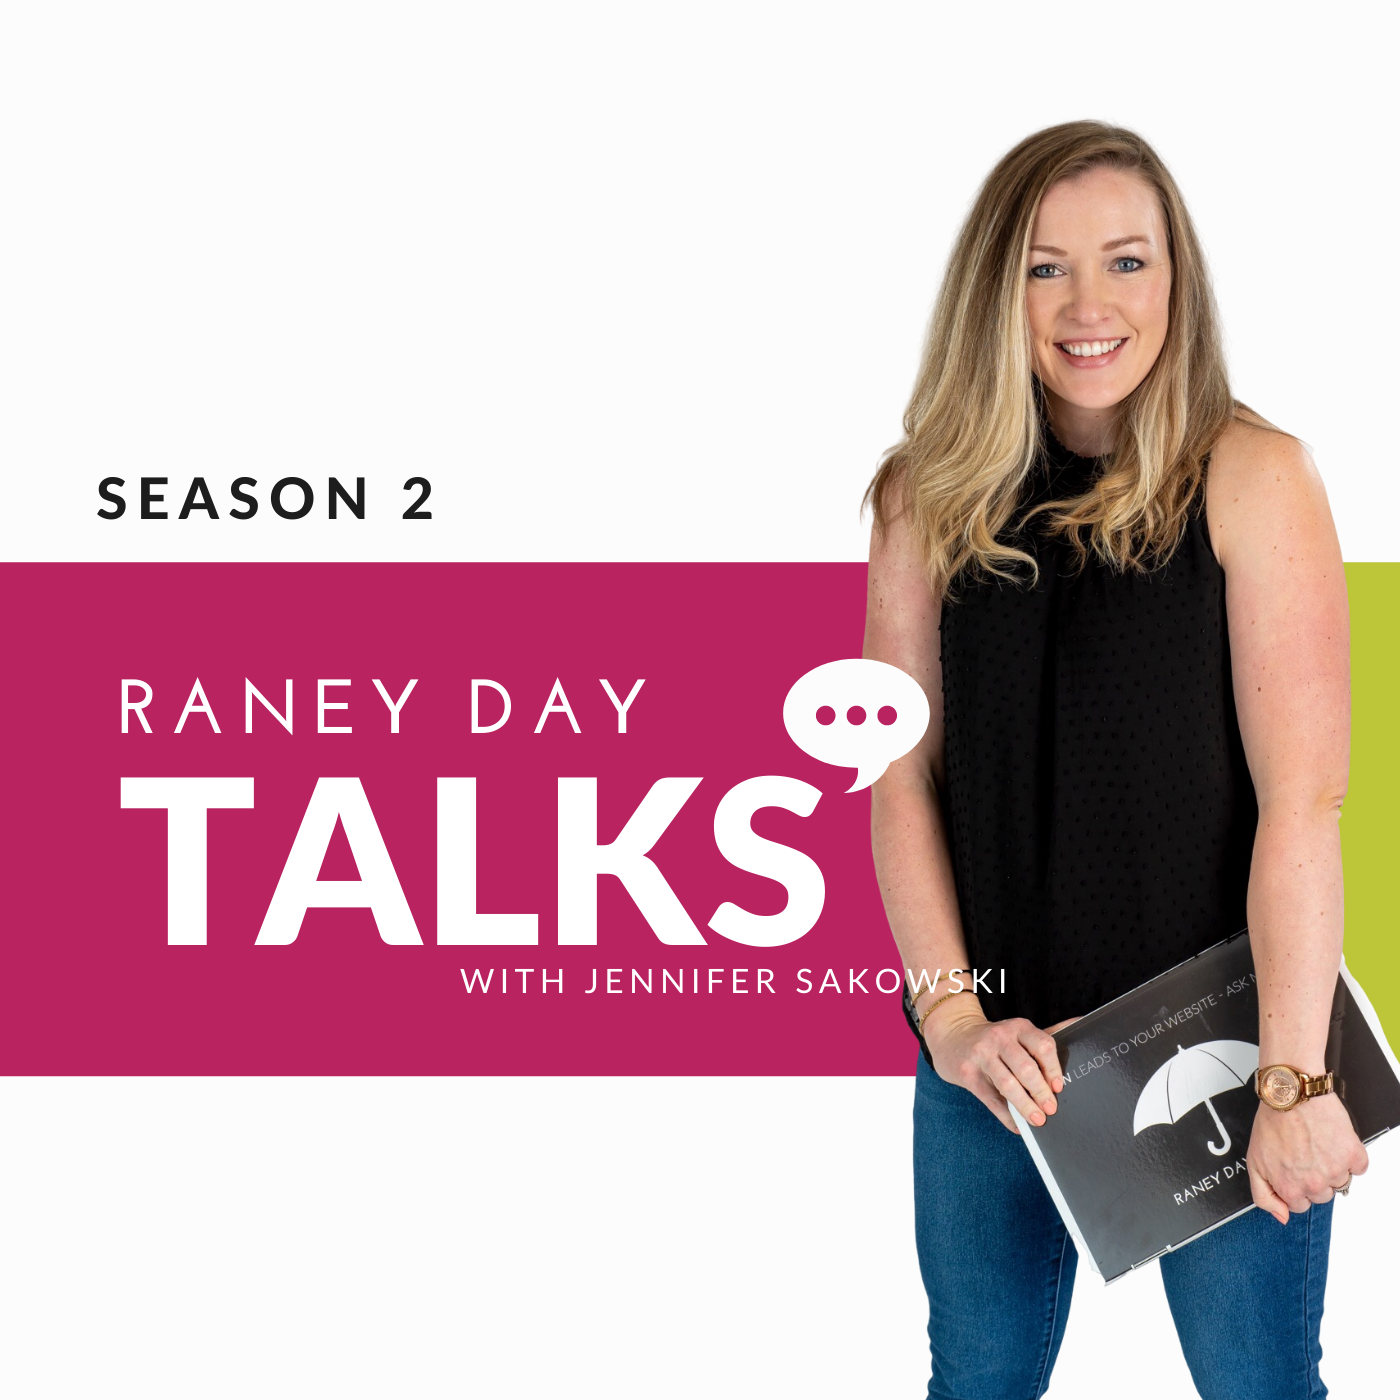 Raney Day Talks Podcast show art